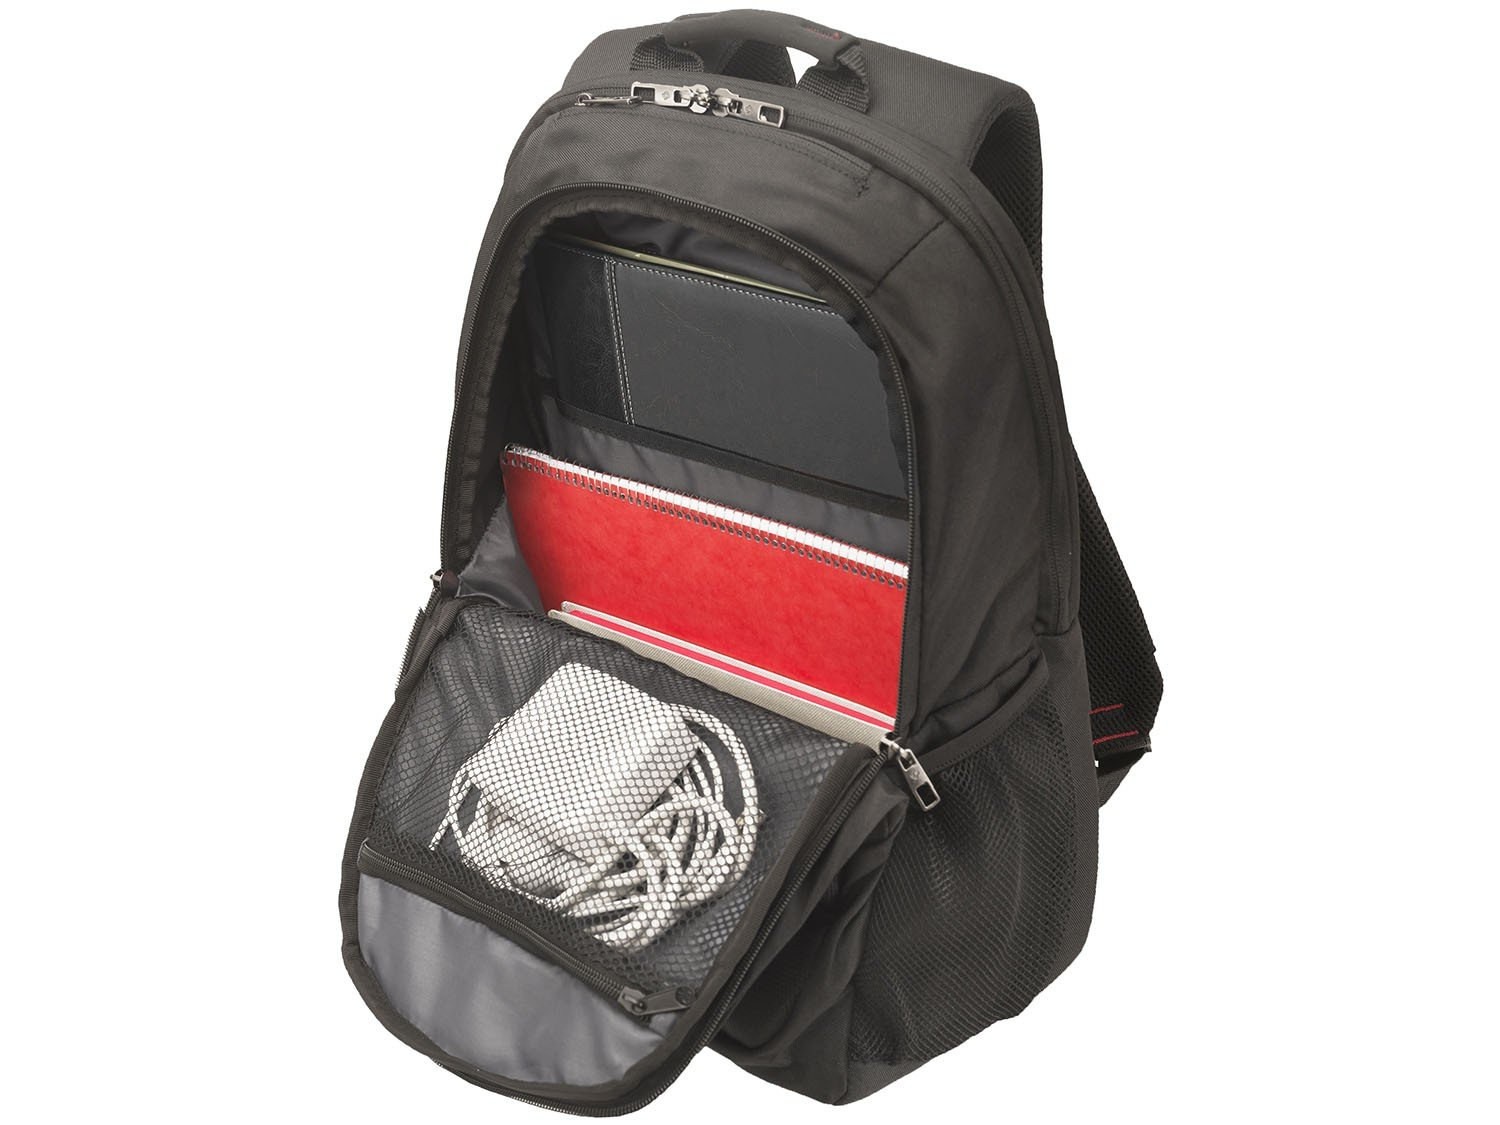 Mochila Samsonite para Notebook Guard IT Preto - 7